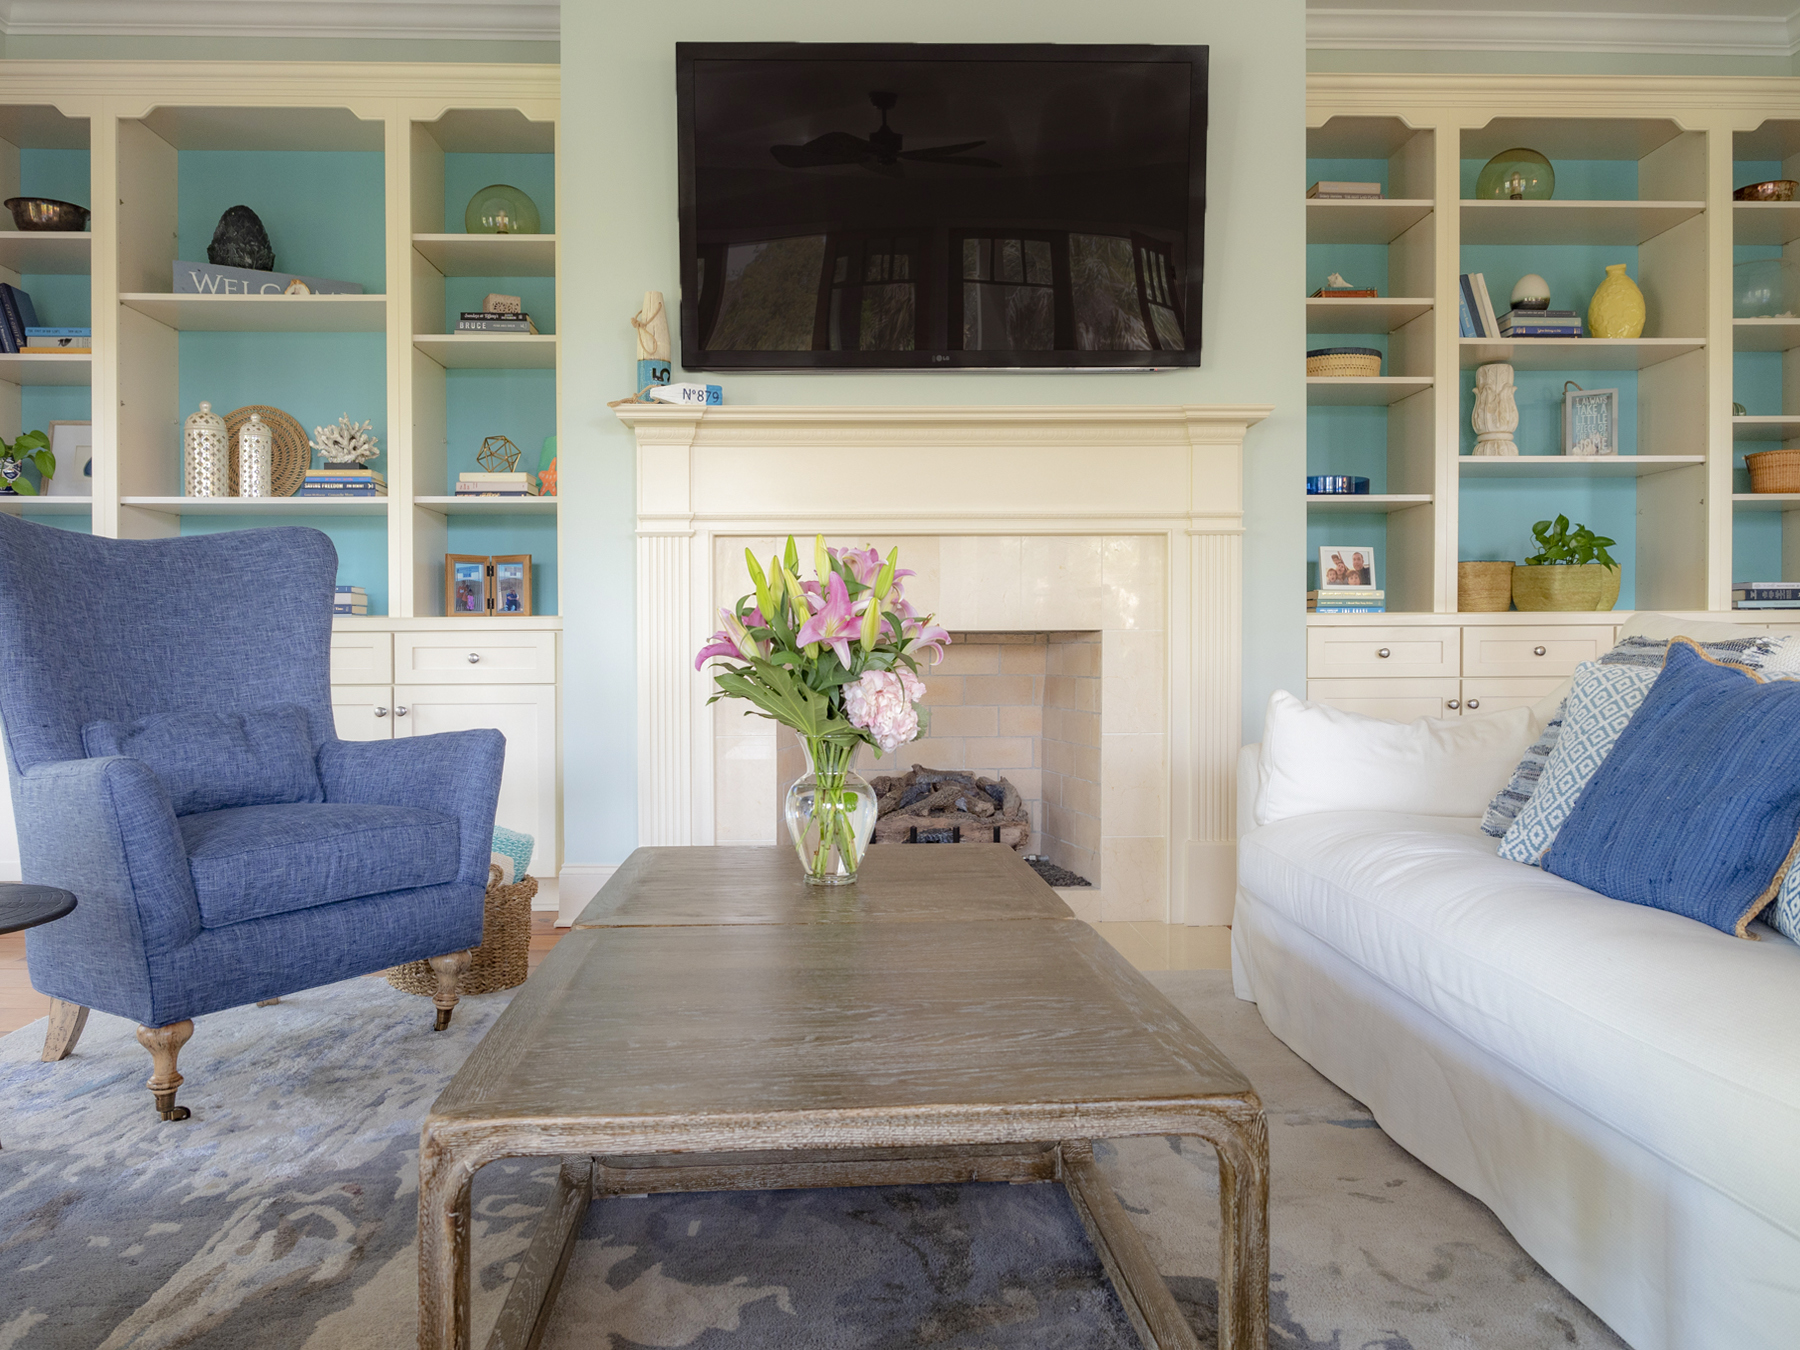 A large HDTV sits above the gas fireplace.